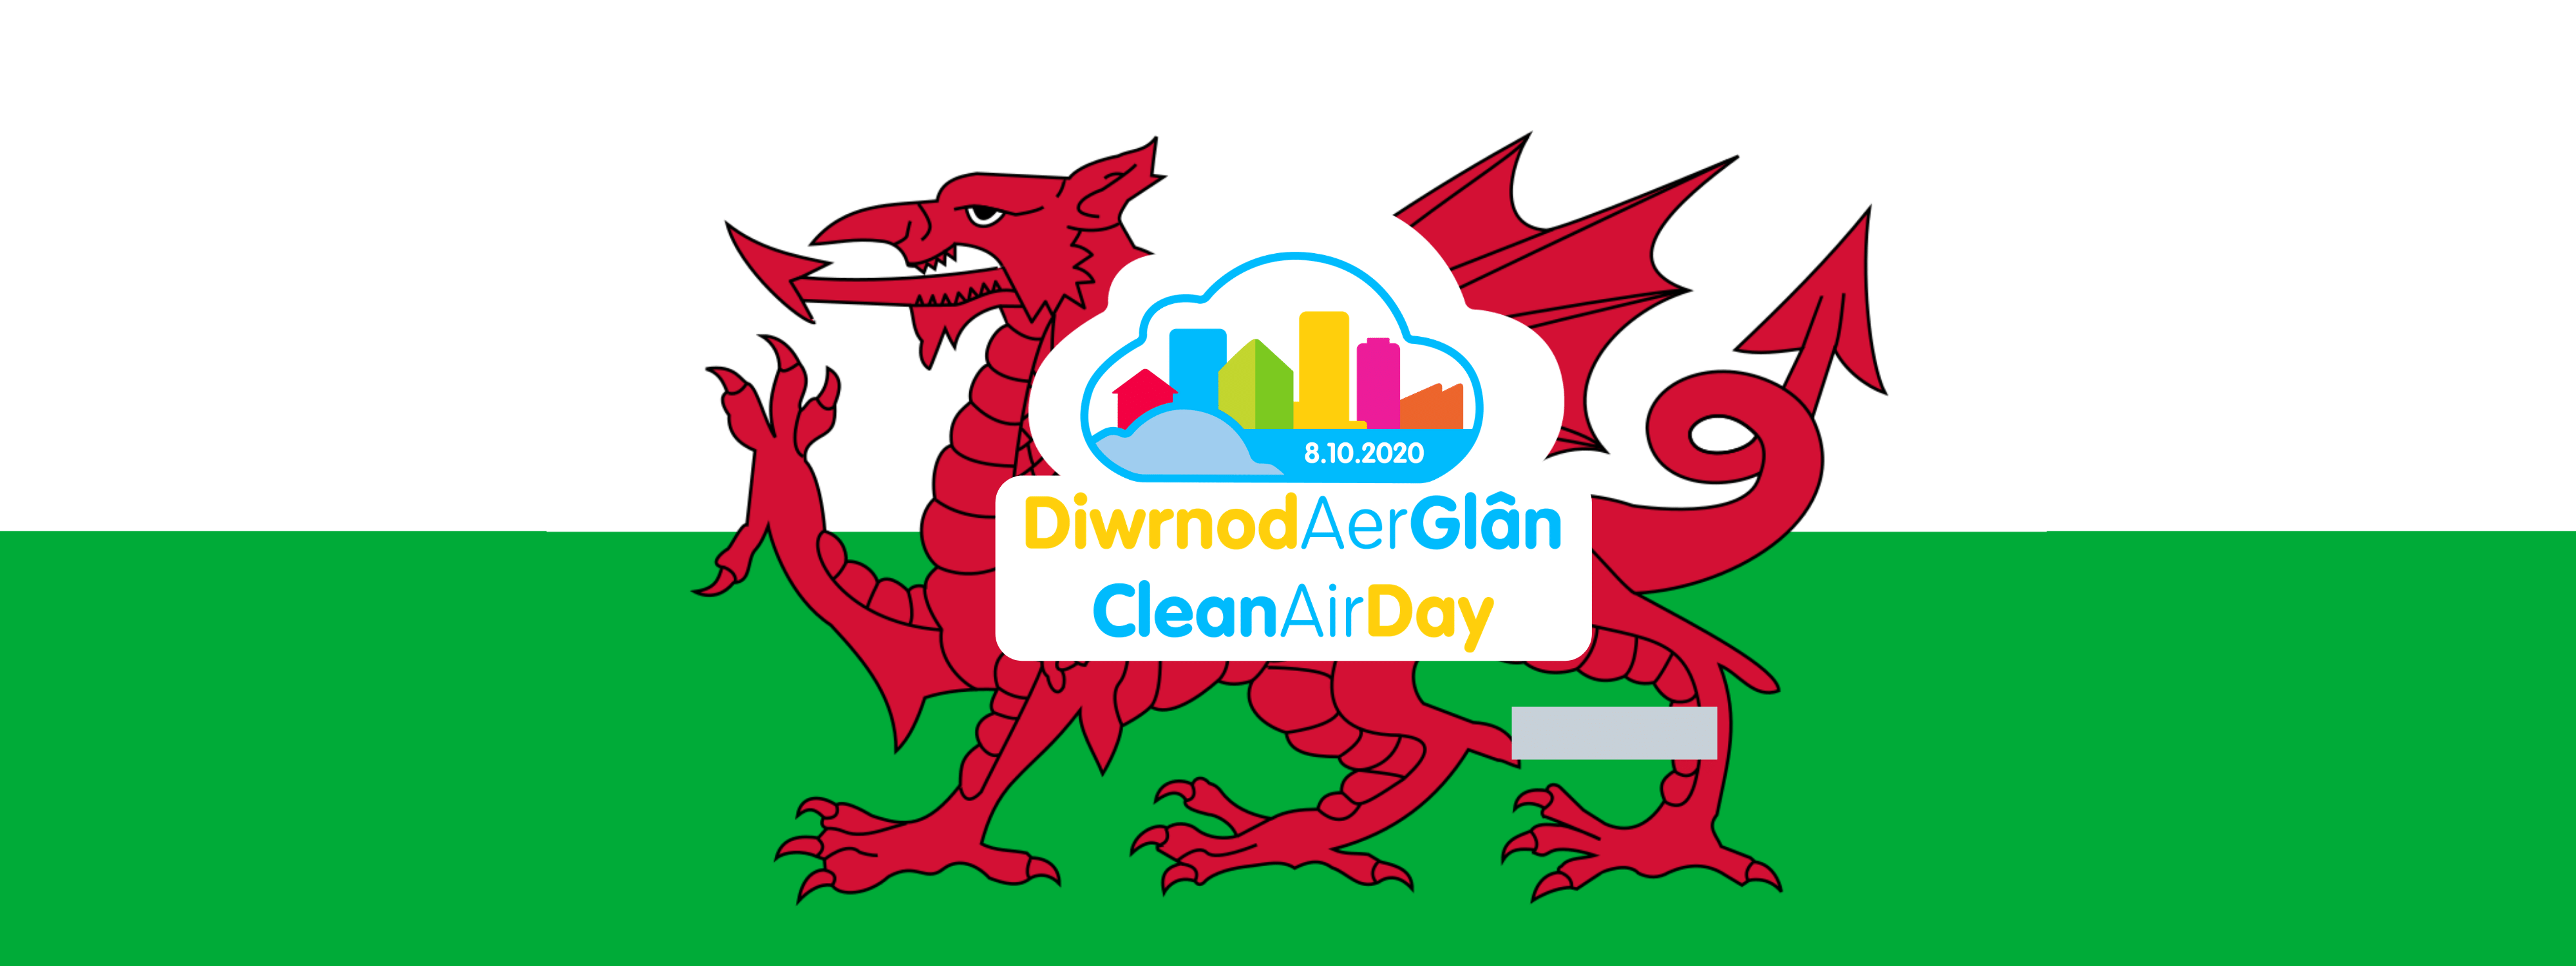 Clean Air Day Wales logo on a background of the Welsh flag